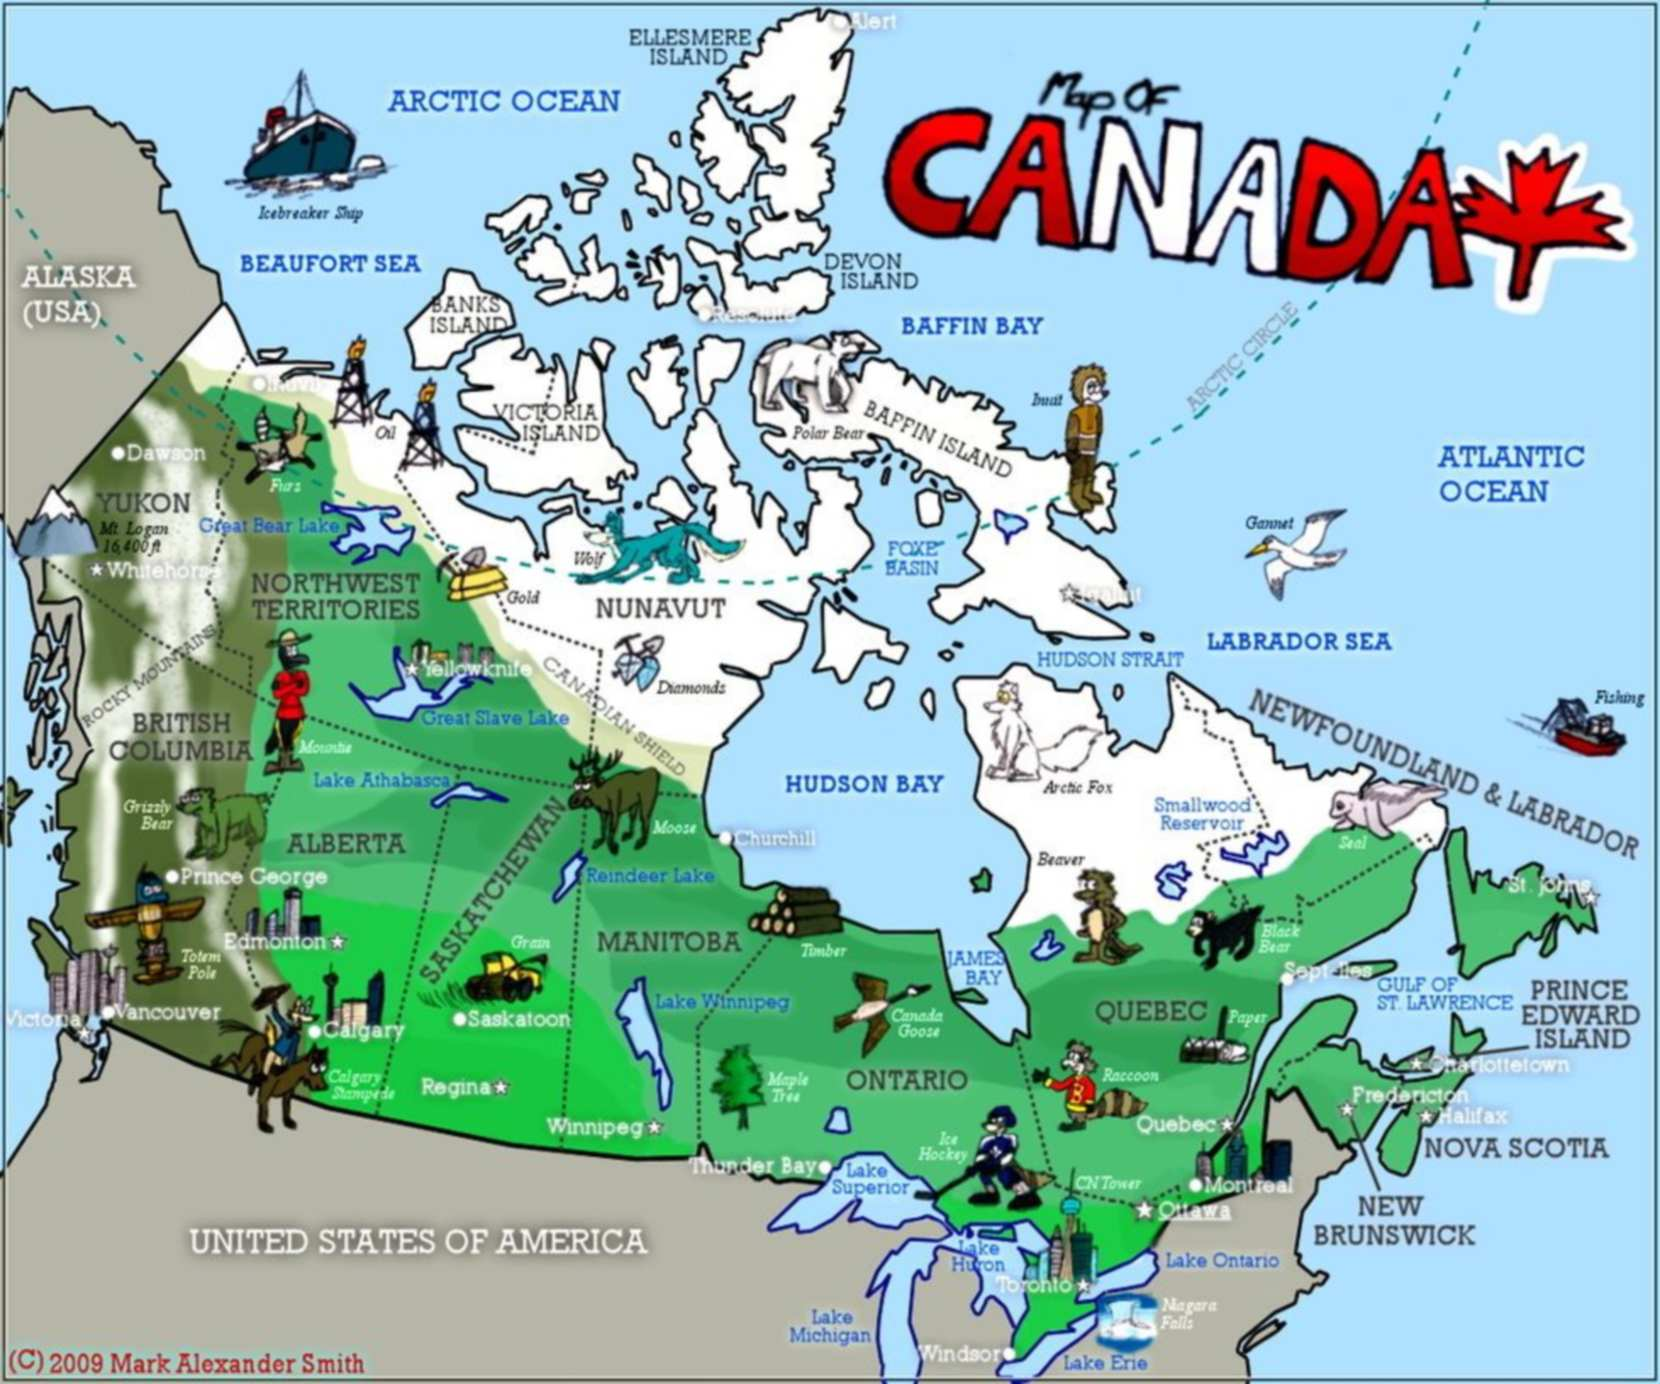 canada quiz image of the map of canada